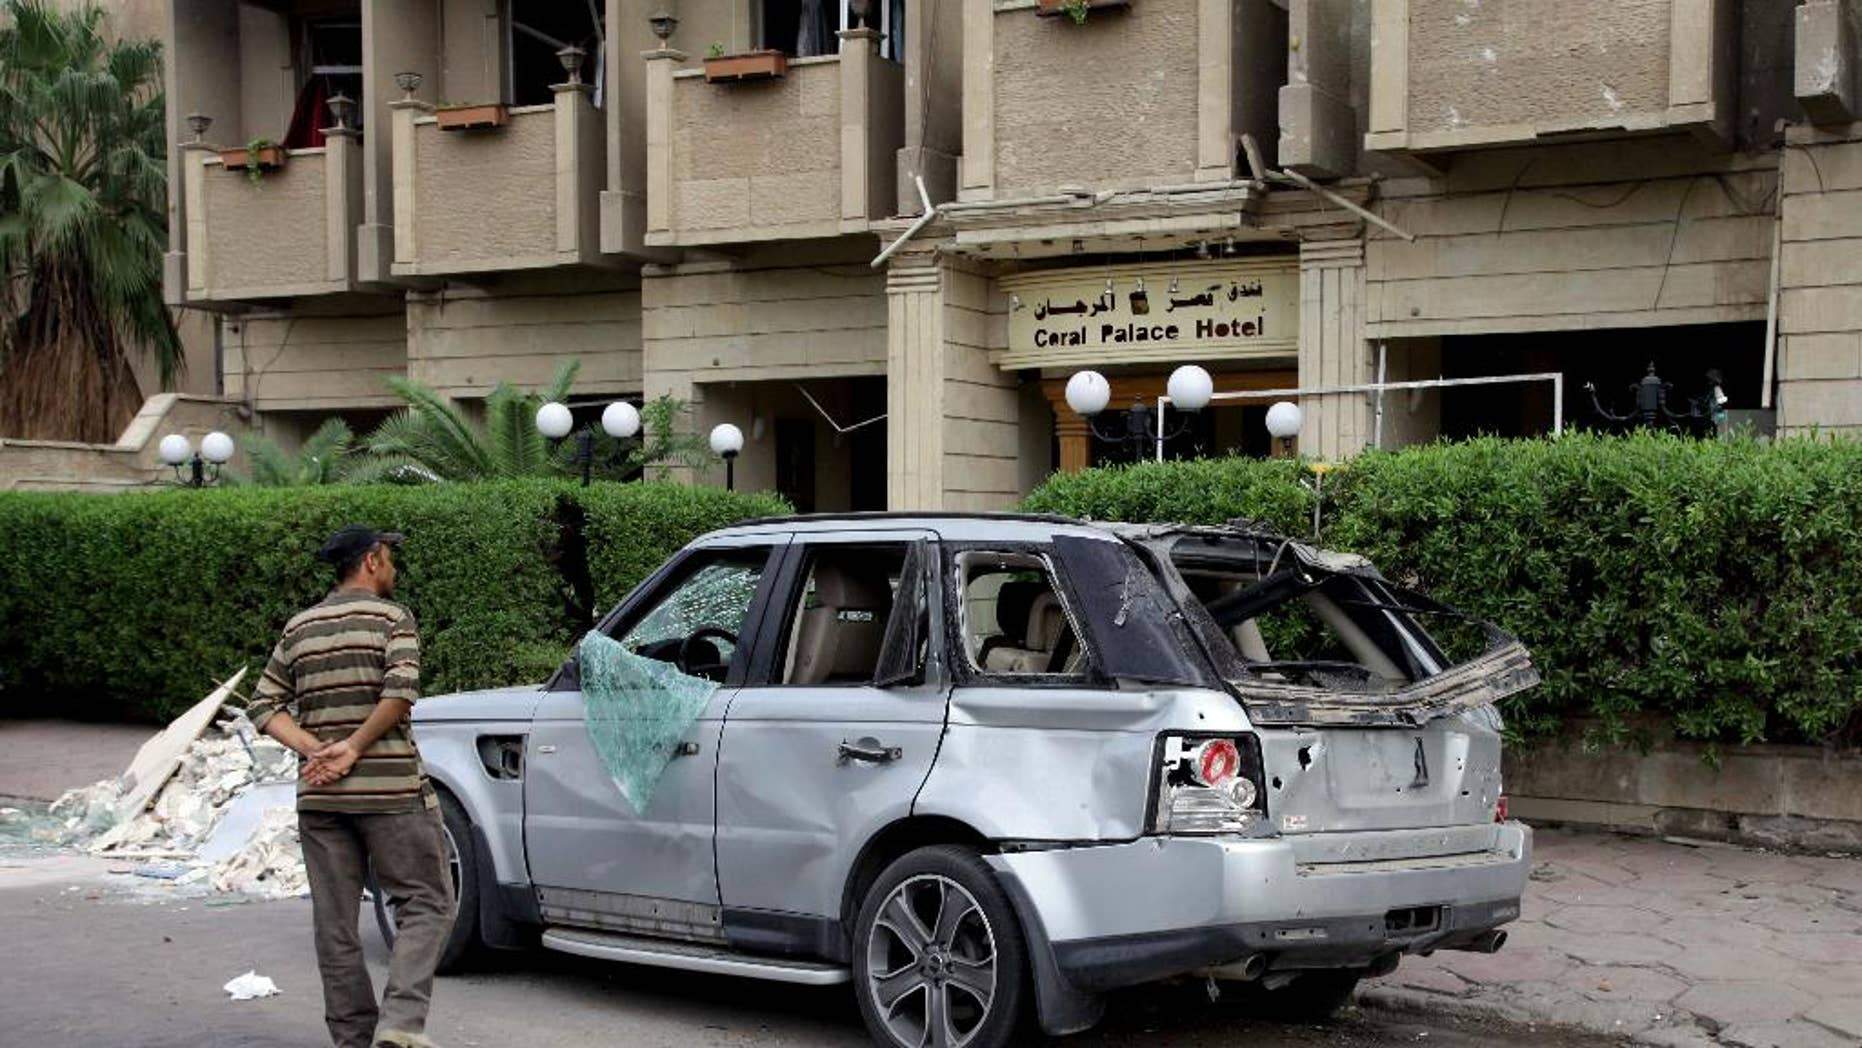 An Iraqi man inspects a damaged vehicle in the aftermath of a car bomb explosion in Baghdad, Iraq, Tuesday, Oct. 28, 2014. On Monday night, a car bomb blast near a line of shops and restaurants in downtown Baghdad killed more than a dozen and wounded tens, police said. (AP Photo/Khalid Mohammed)